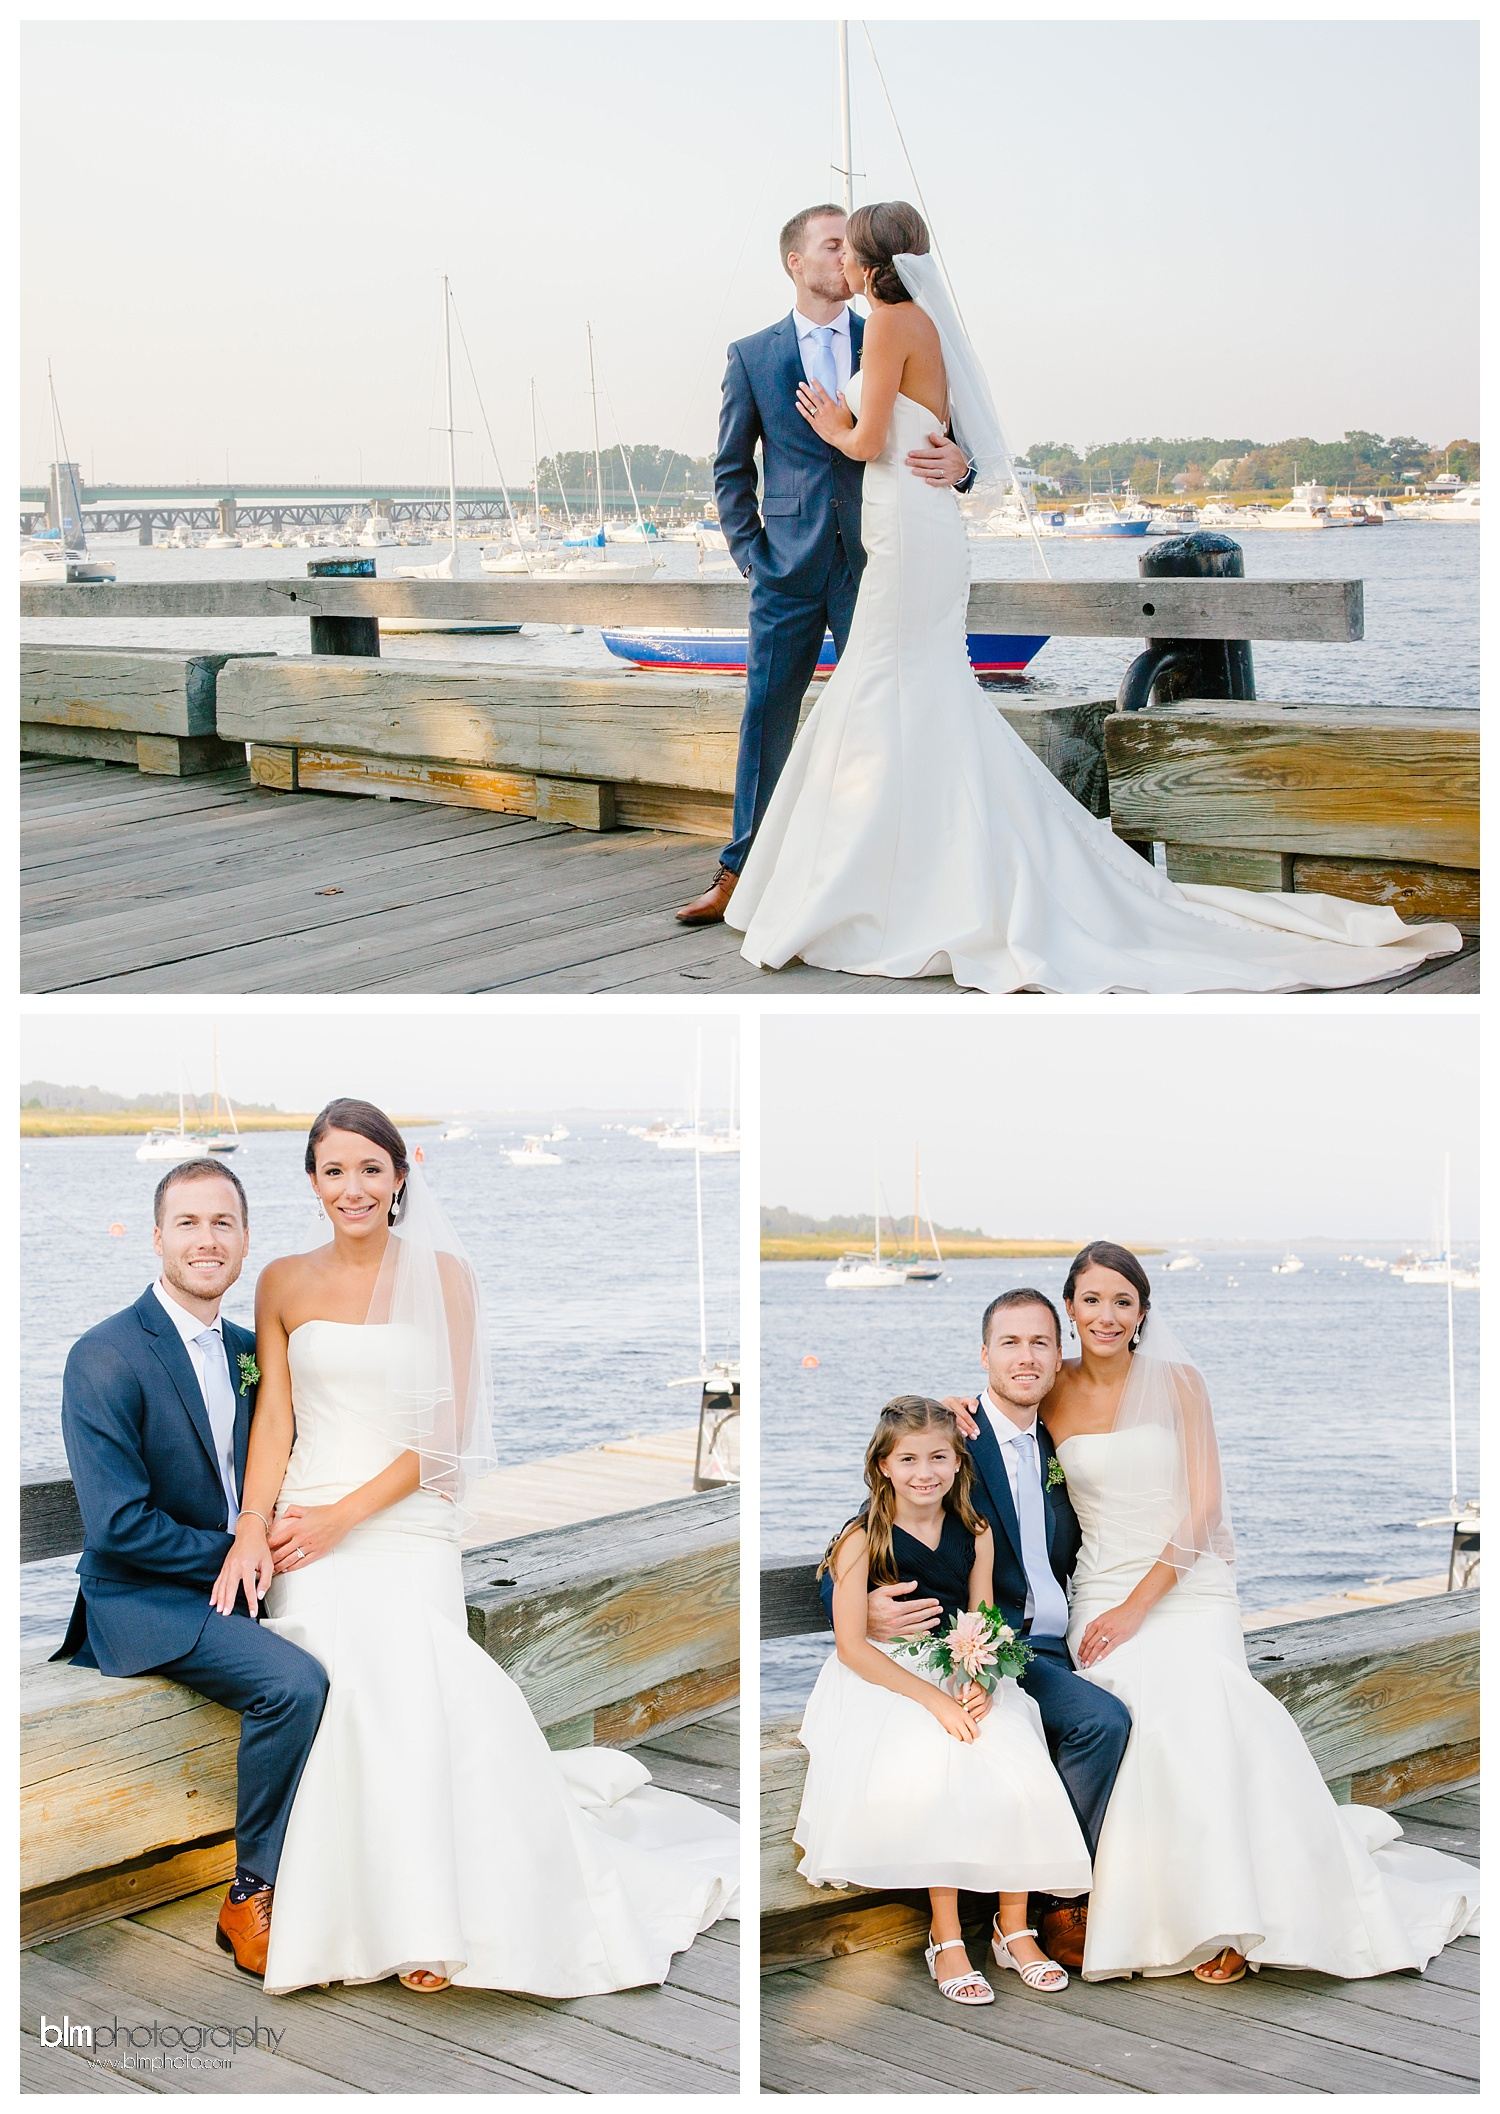 229Nathalie & Kirwan Married at The Maritime Museum_20170916_3914.jpg